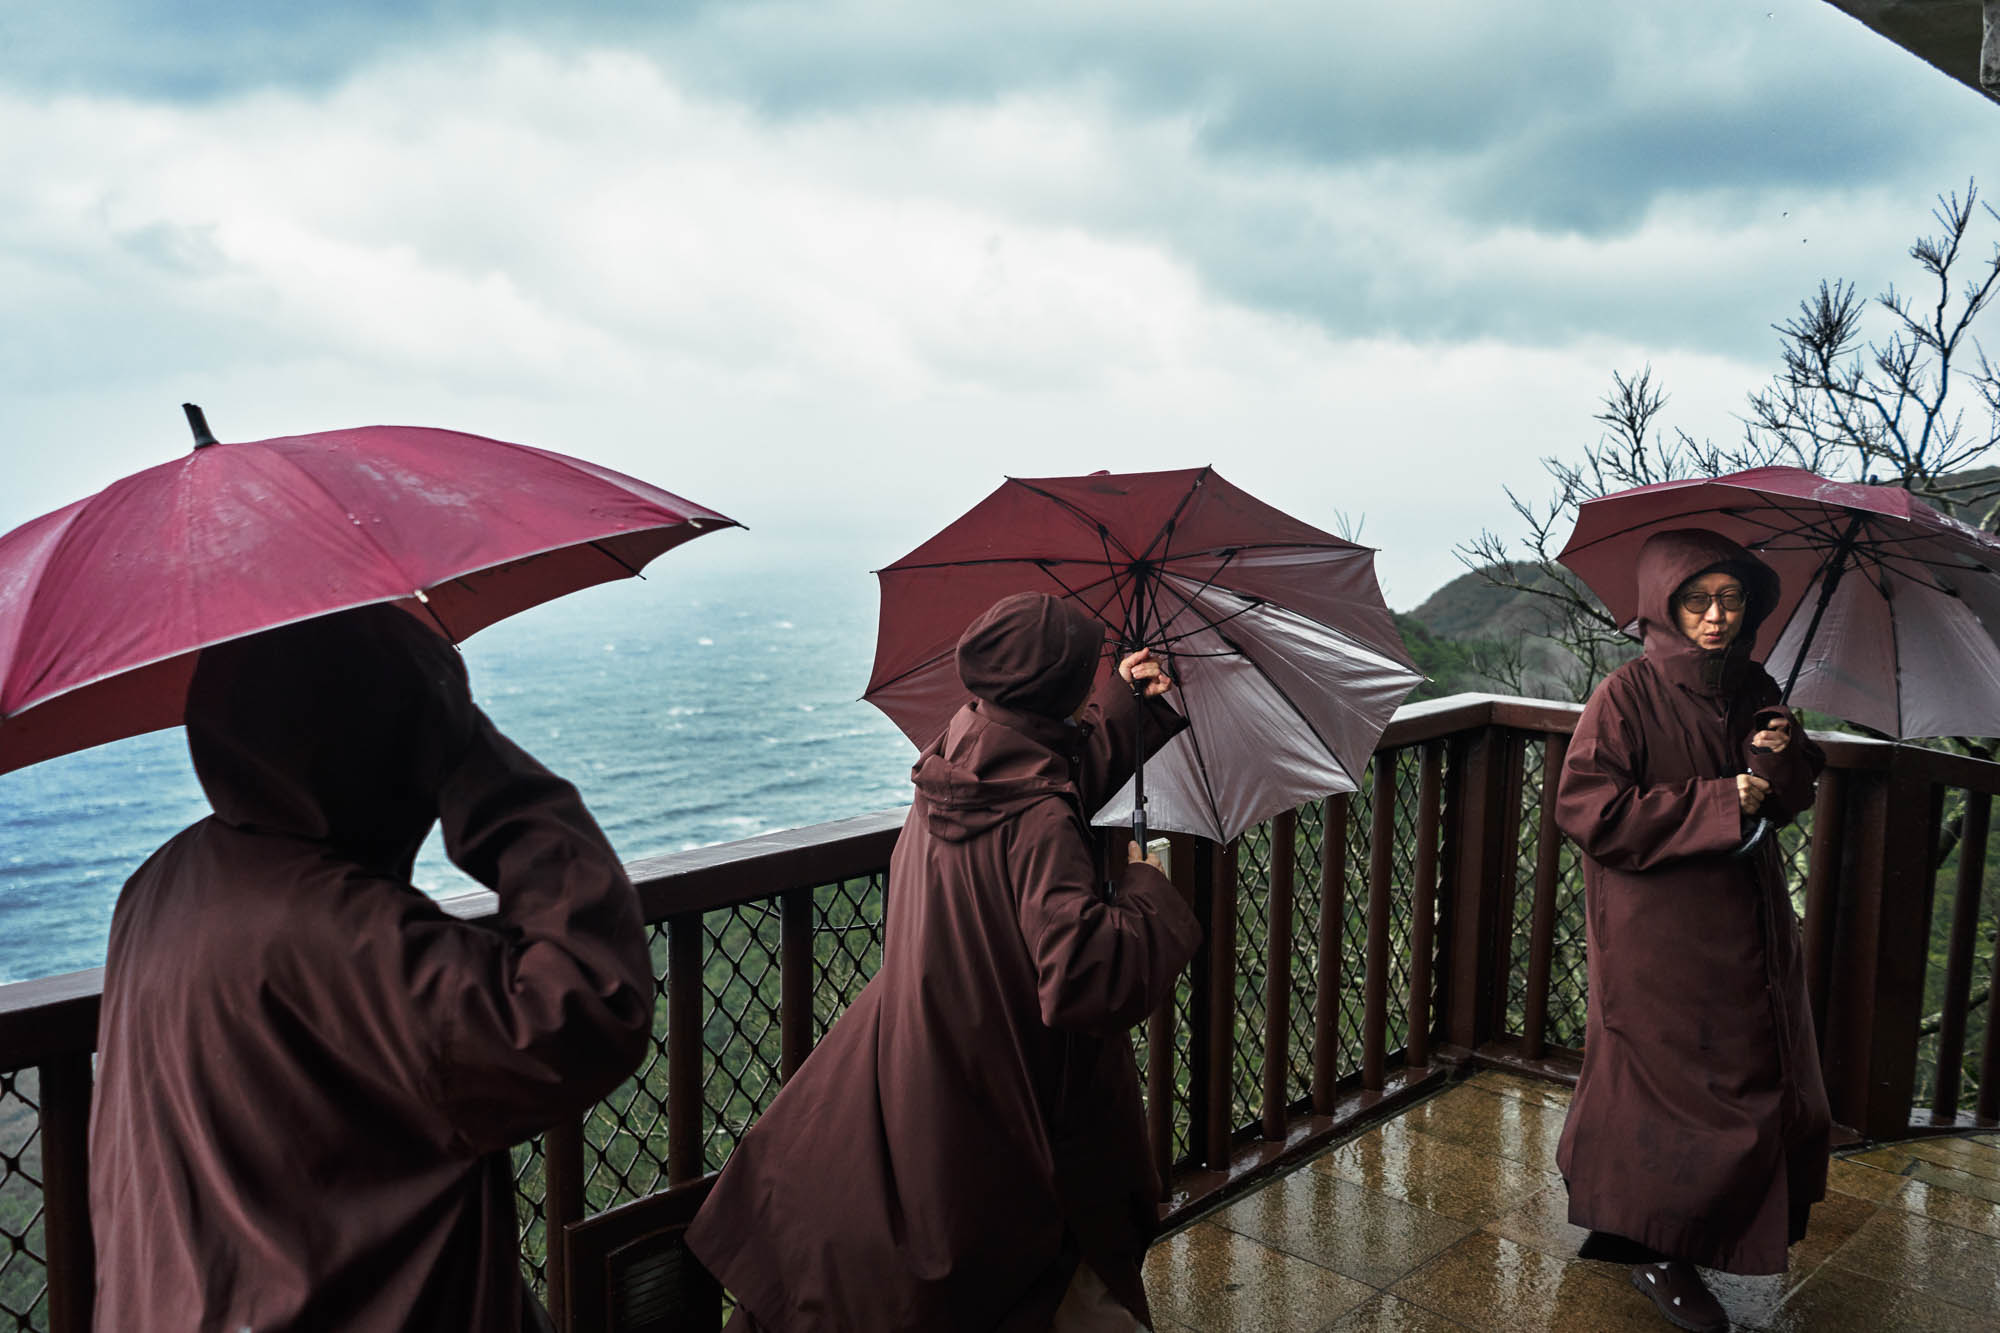 A group of nuns moving about the Ling Jiou Mountain Buddhist Society in Taiwan